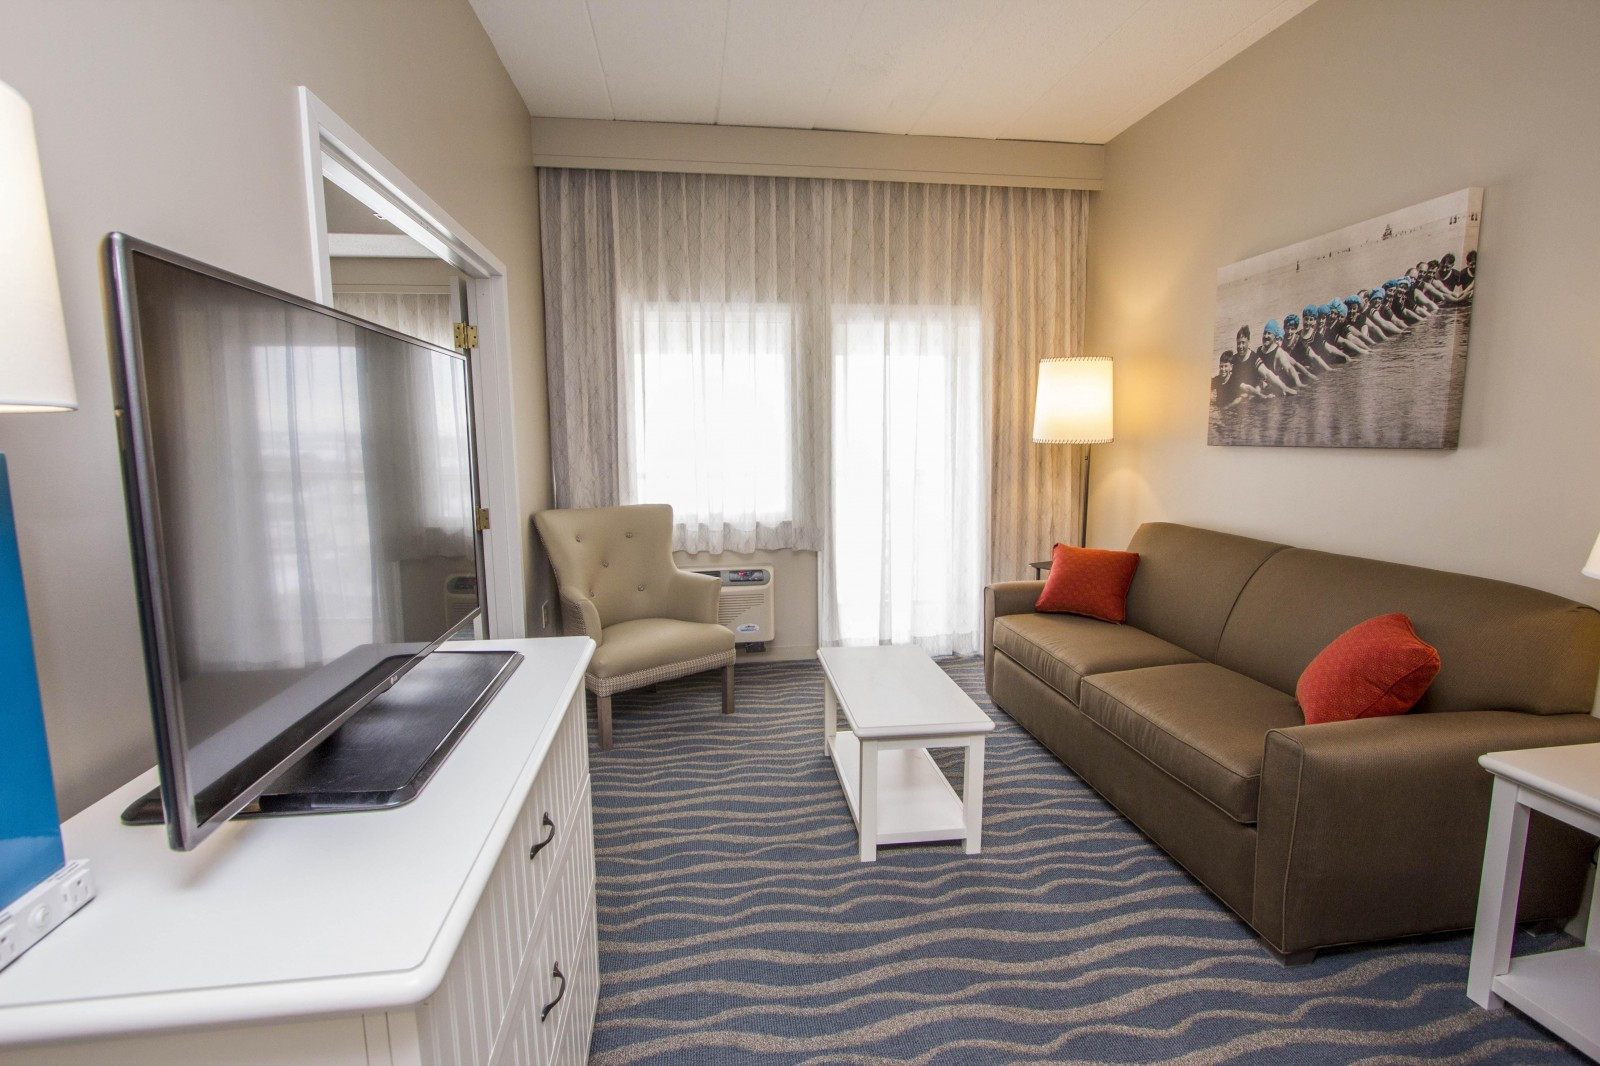 Cedar Point's Signature Hotel Breakers Opens in Just Days (picture courtesy of Cedar Point) |Sharon the Moments Blog